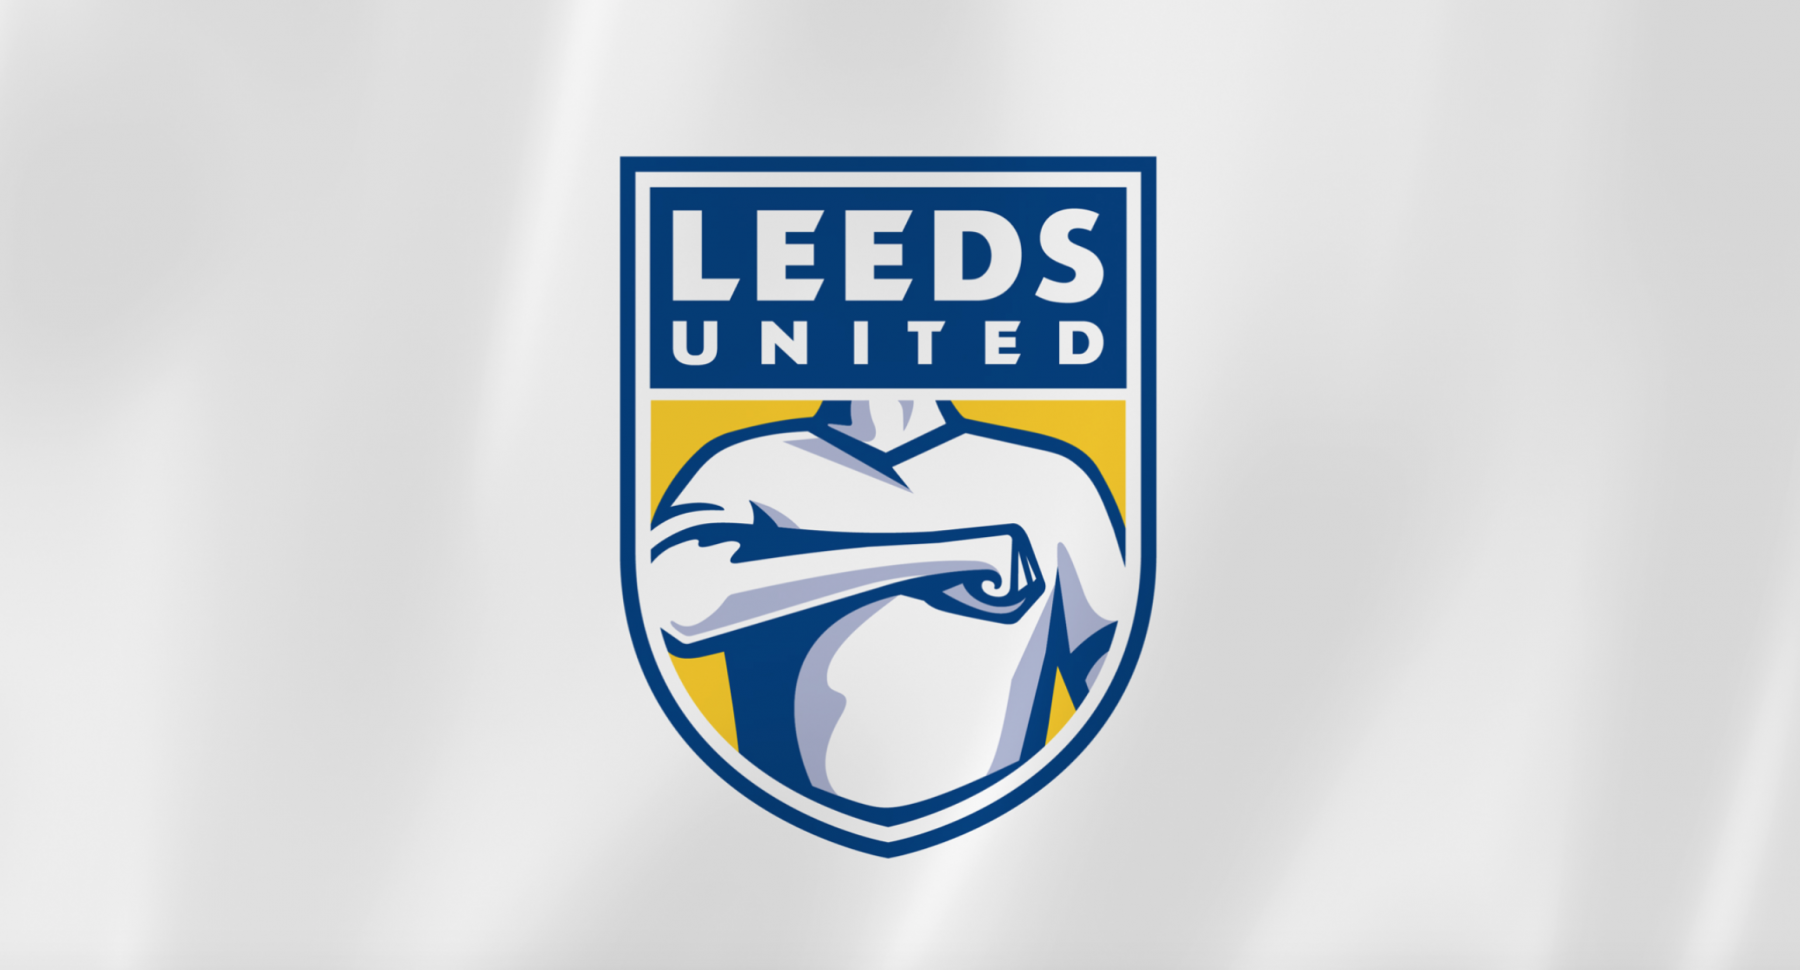 Leeds United: Thousands Sign Petition To Block New Leeds United Badge